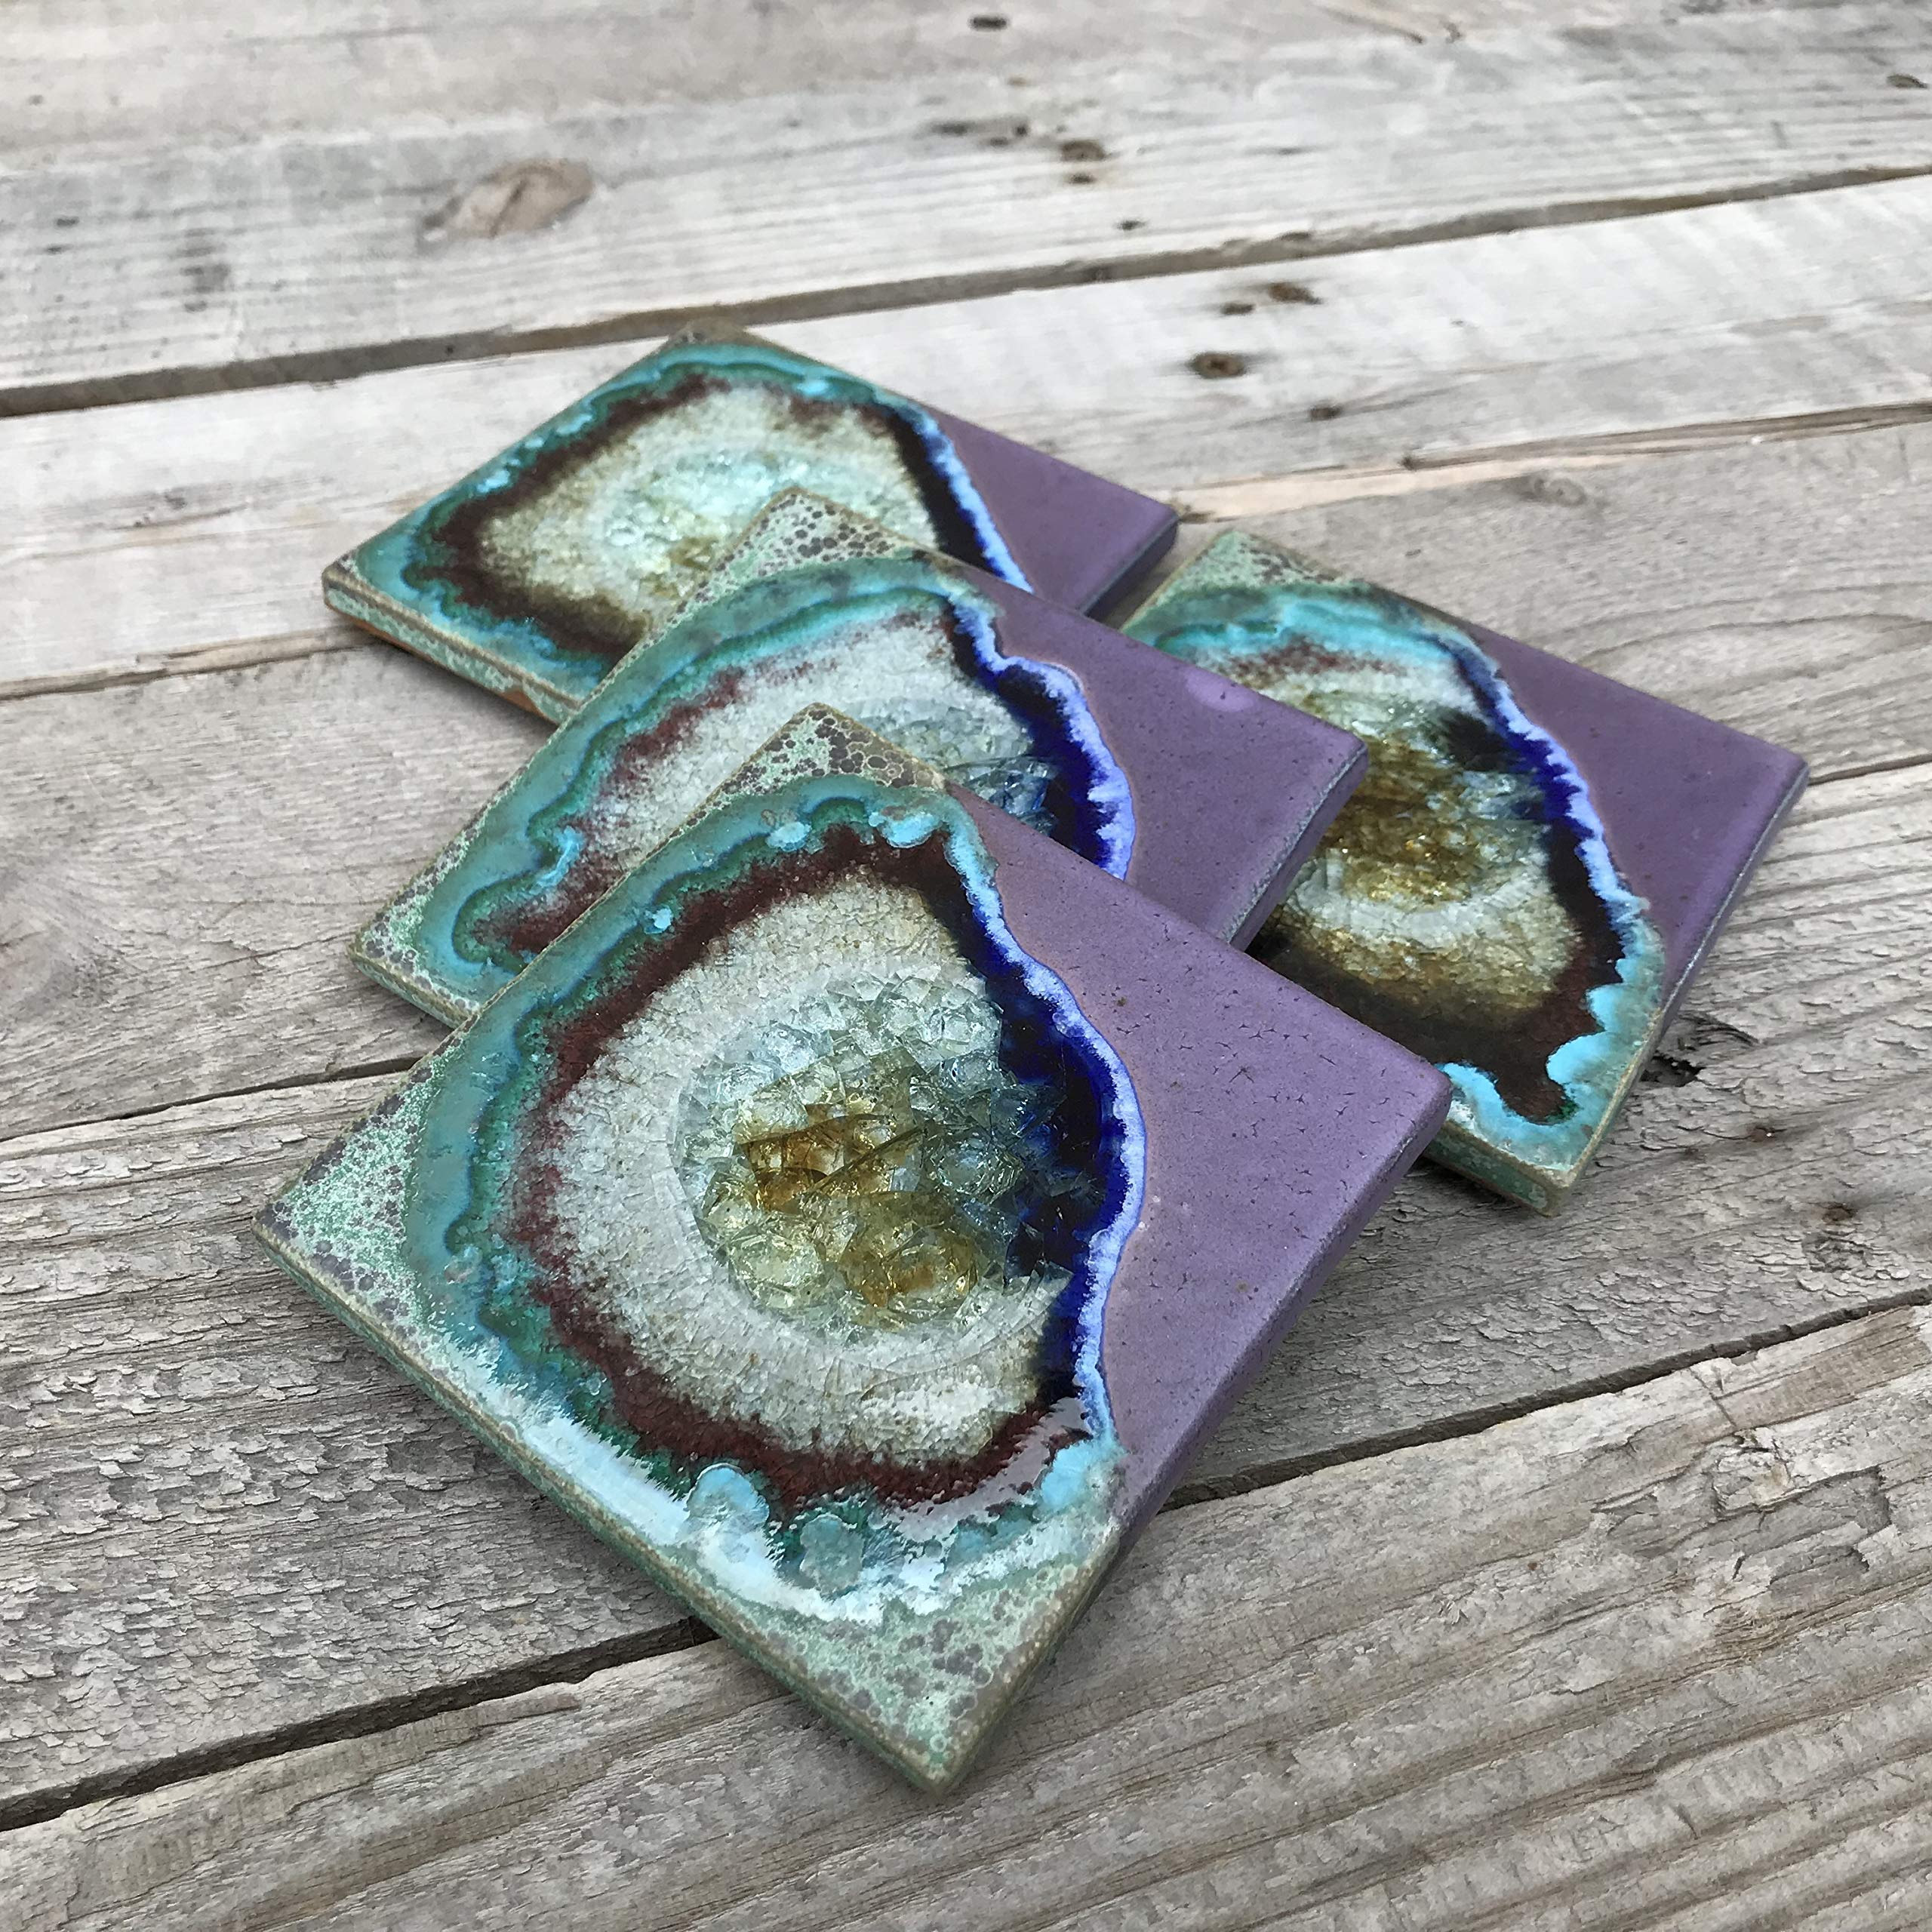 Geode Crackle Coaster Set of 4 in PURPLE AND GREEN: Geode Coaster, Crackle Coaster, Fused Glass Coaster, Crackle Glass Coaster, Agate Coaster, Ceramic Coaster, Dock 6 Pottery Coaster